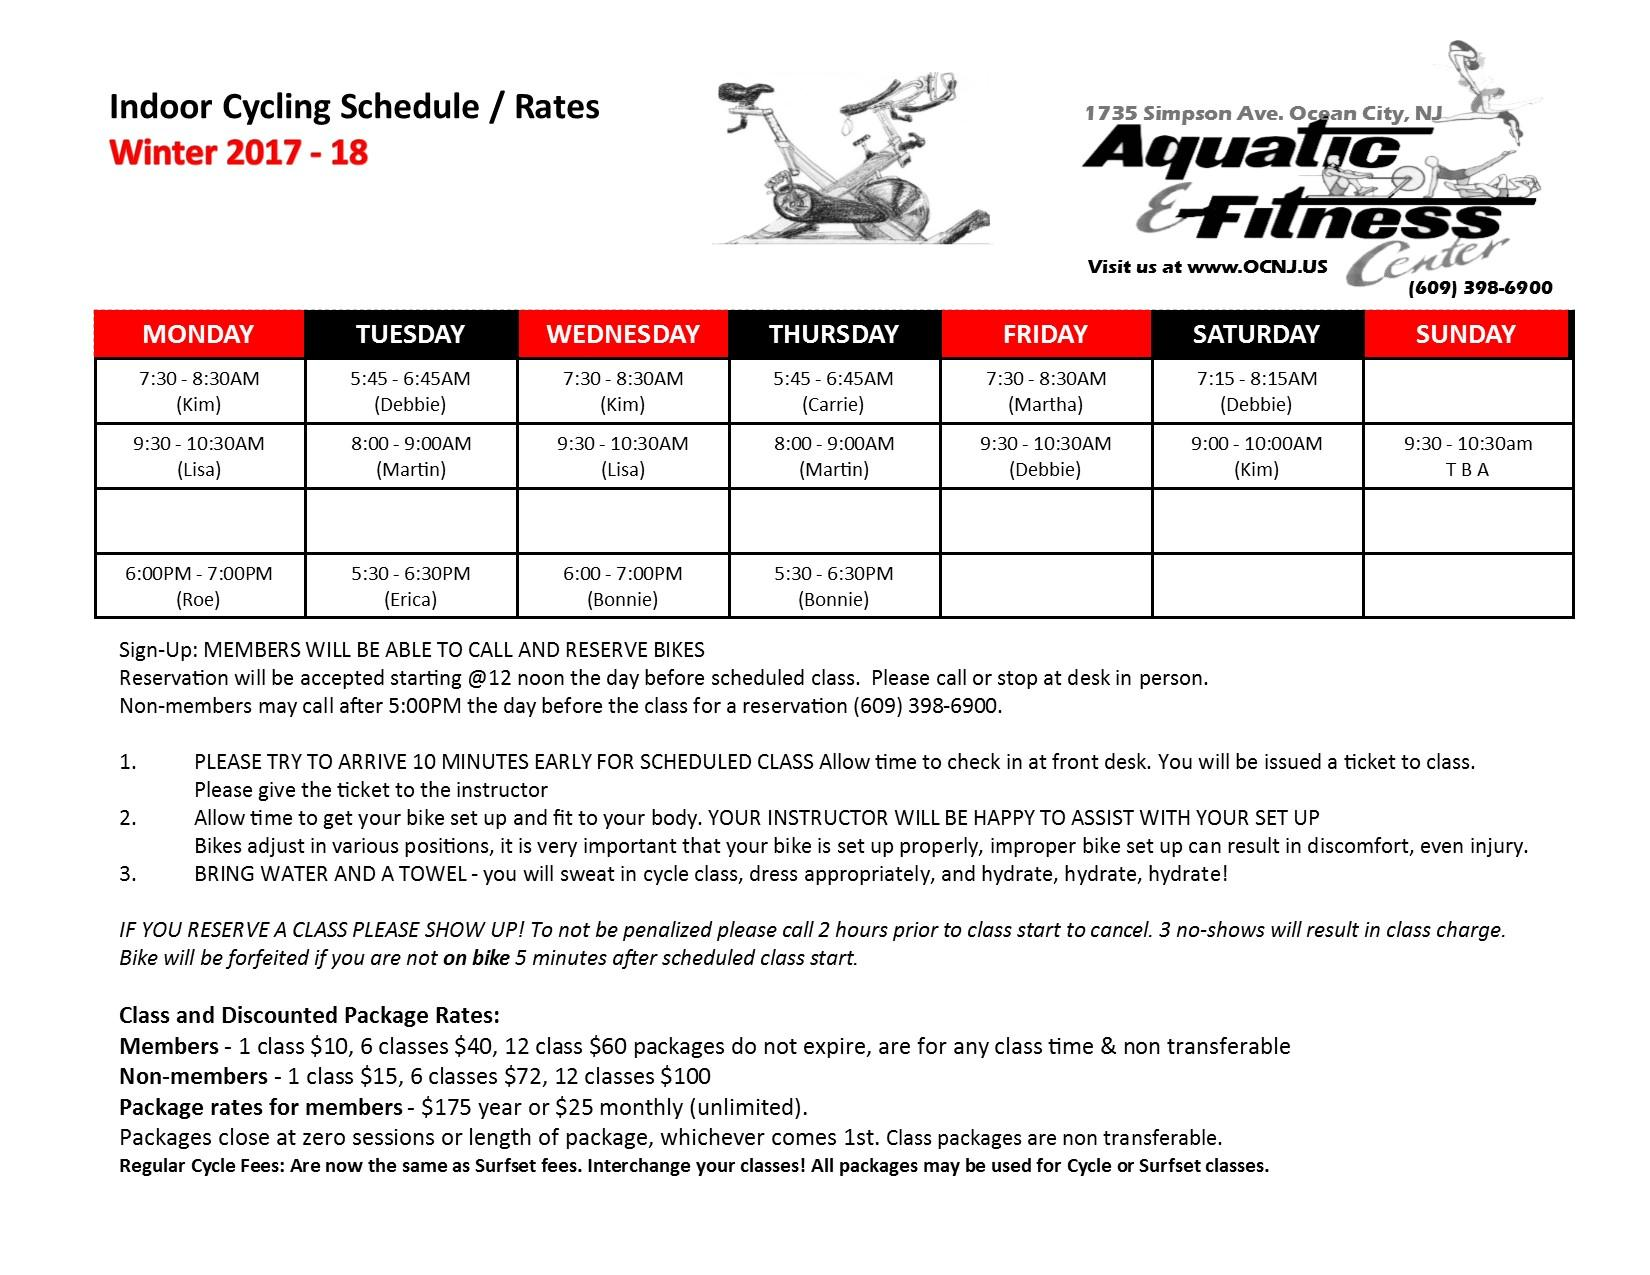 Aquatic fitness center faq click here for winter sunday cycle instructor list xflitez Gallery